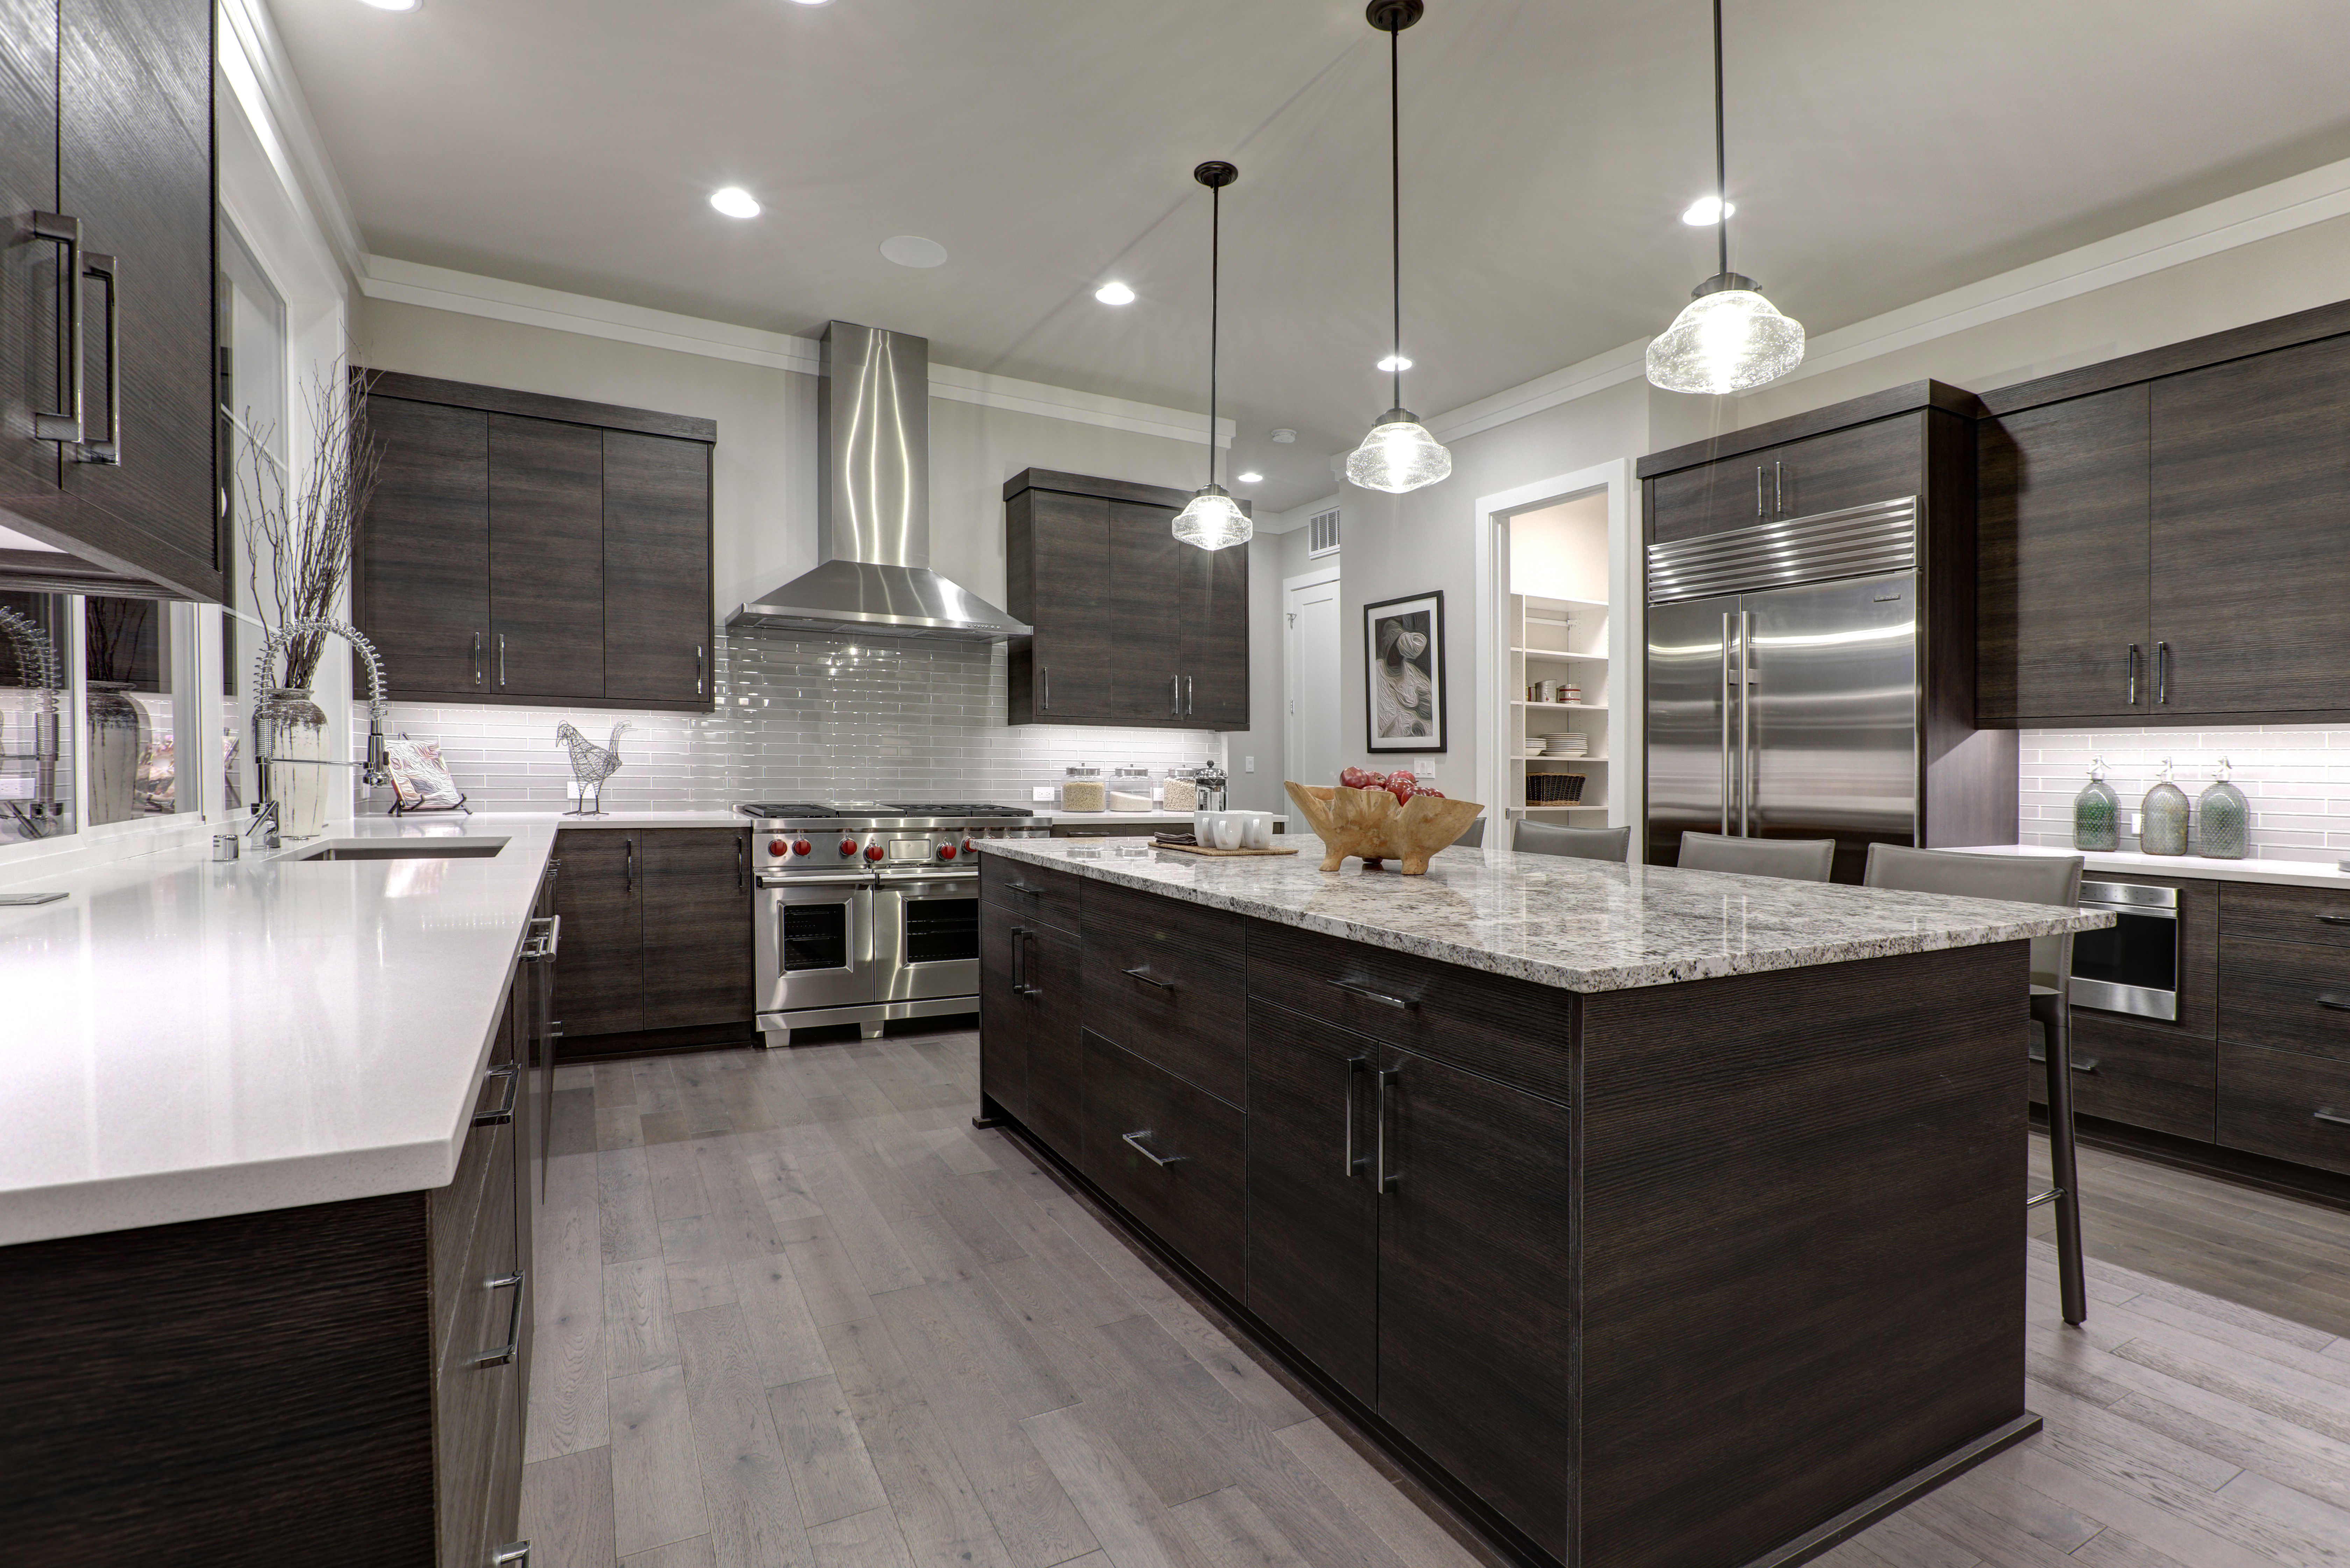 With so many kitchen cabinet styles, it can be hard to choose the right one for you. Our Phoenix, Arizona kitchen design consultants can help.